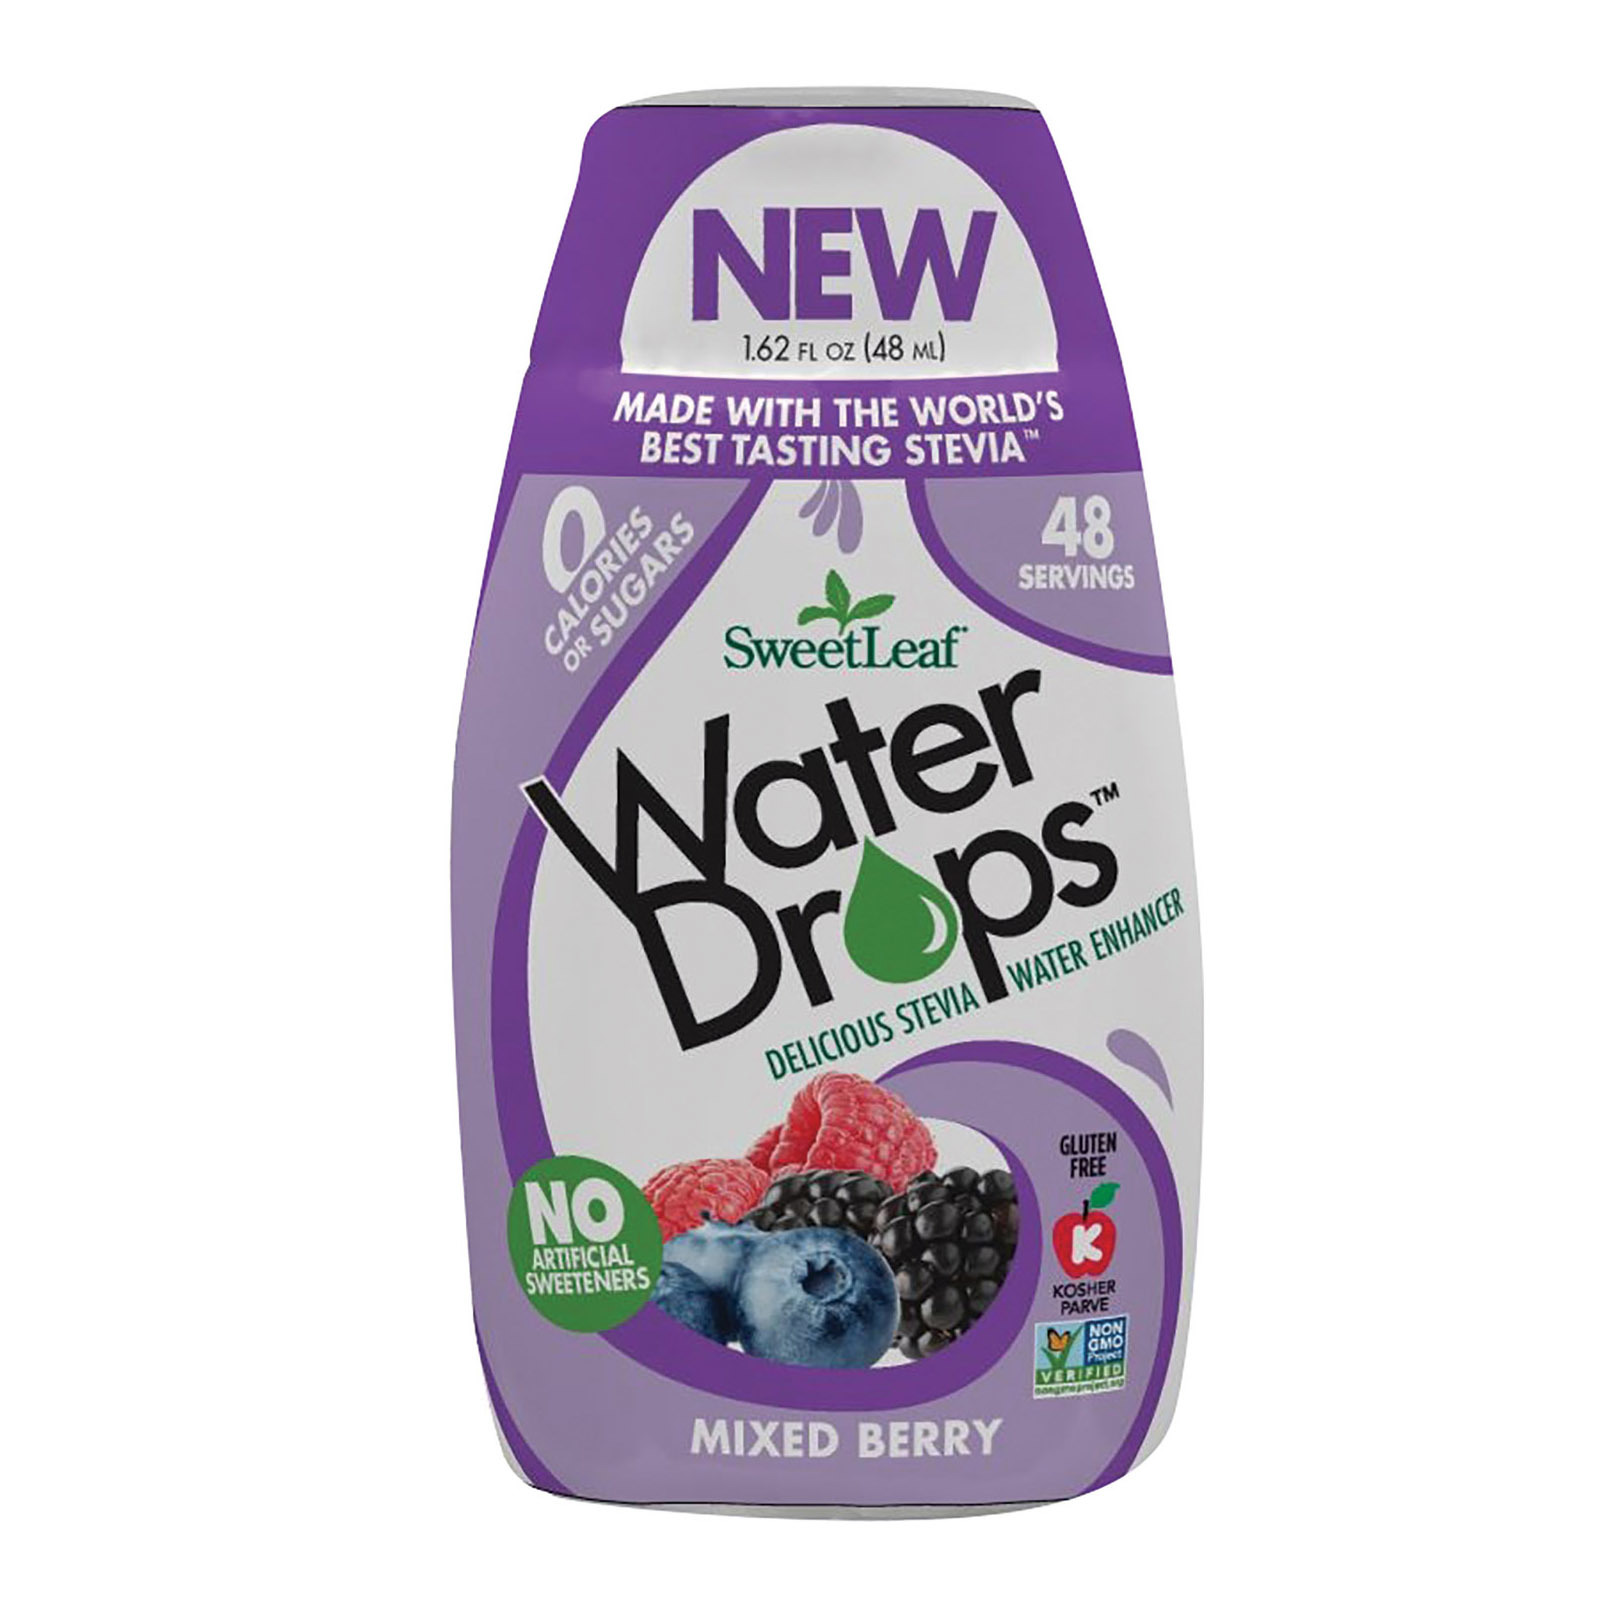 Sweet Leaf Water Drops - Mixed Berry - 1.62 fl oz